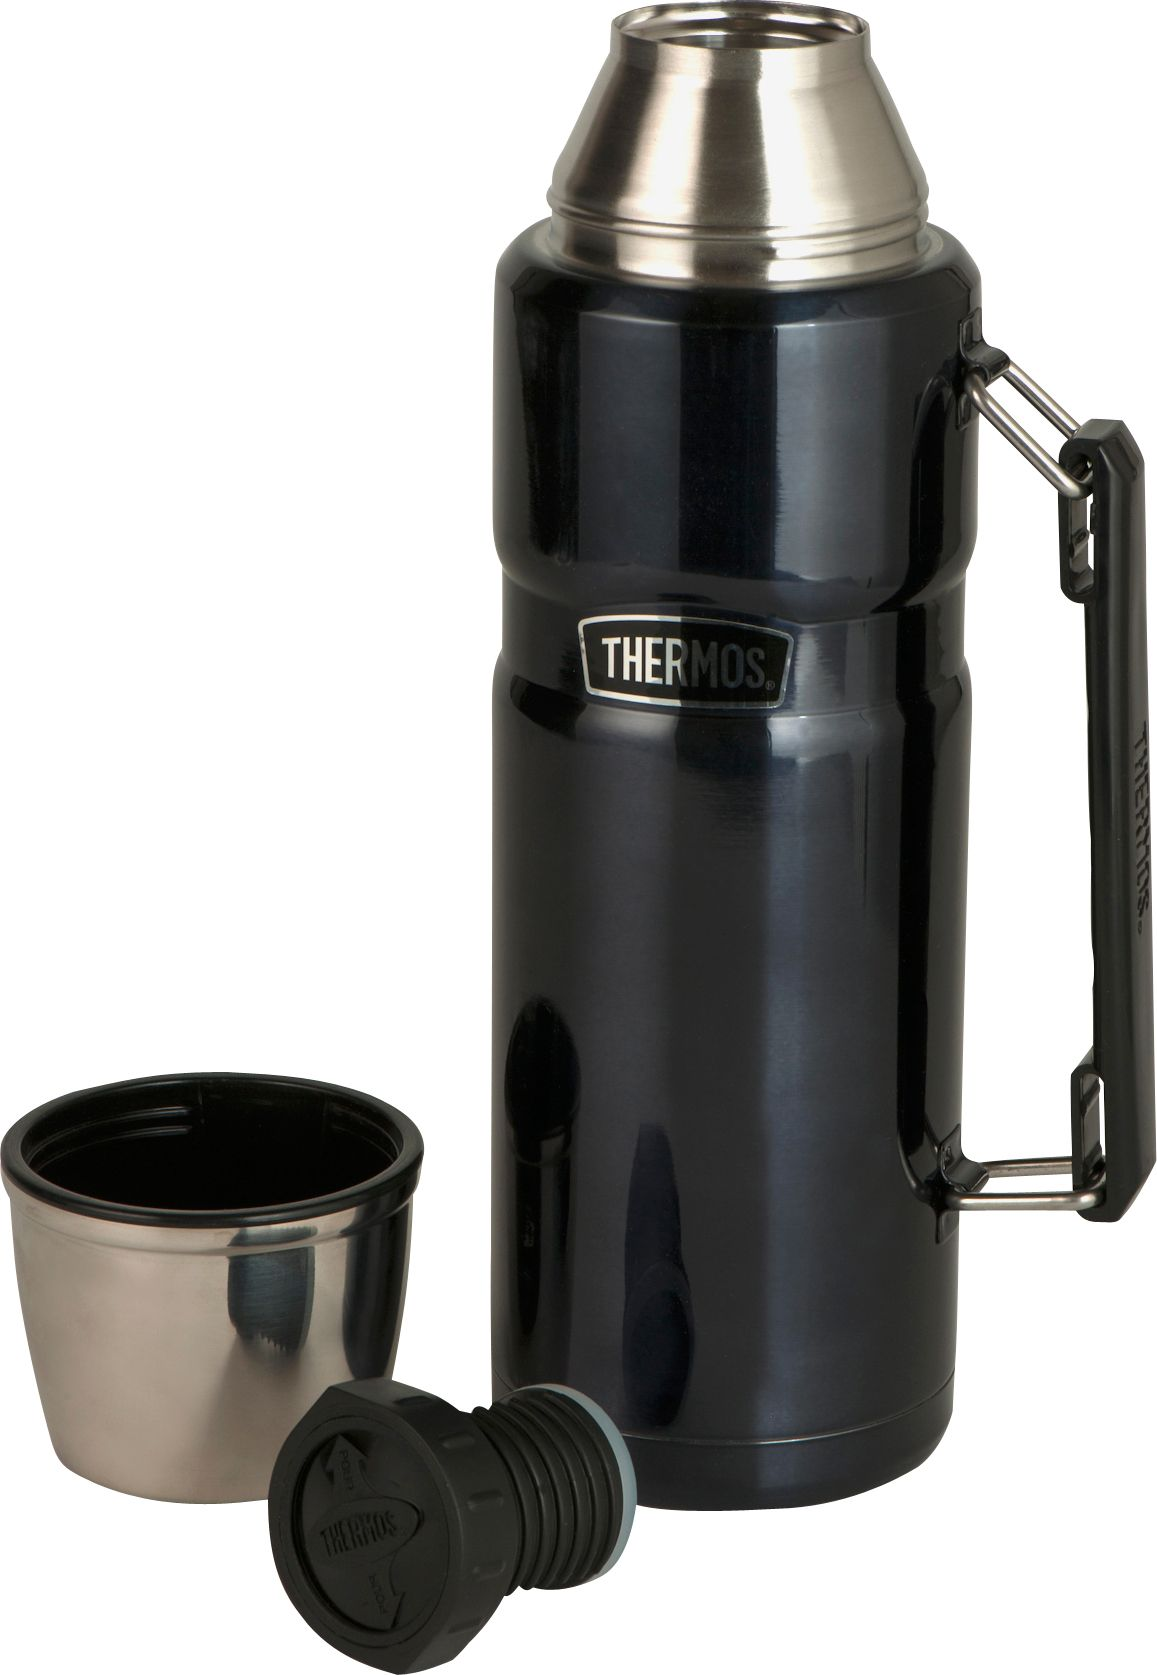 With A Retro Design The 1 2 Litre Thermos Stainless King Flask Has Temperature Retention Capabilities Which Will Keep Your Food O Flask Thermos Retro Design